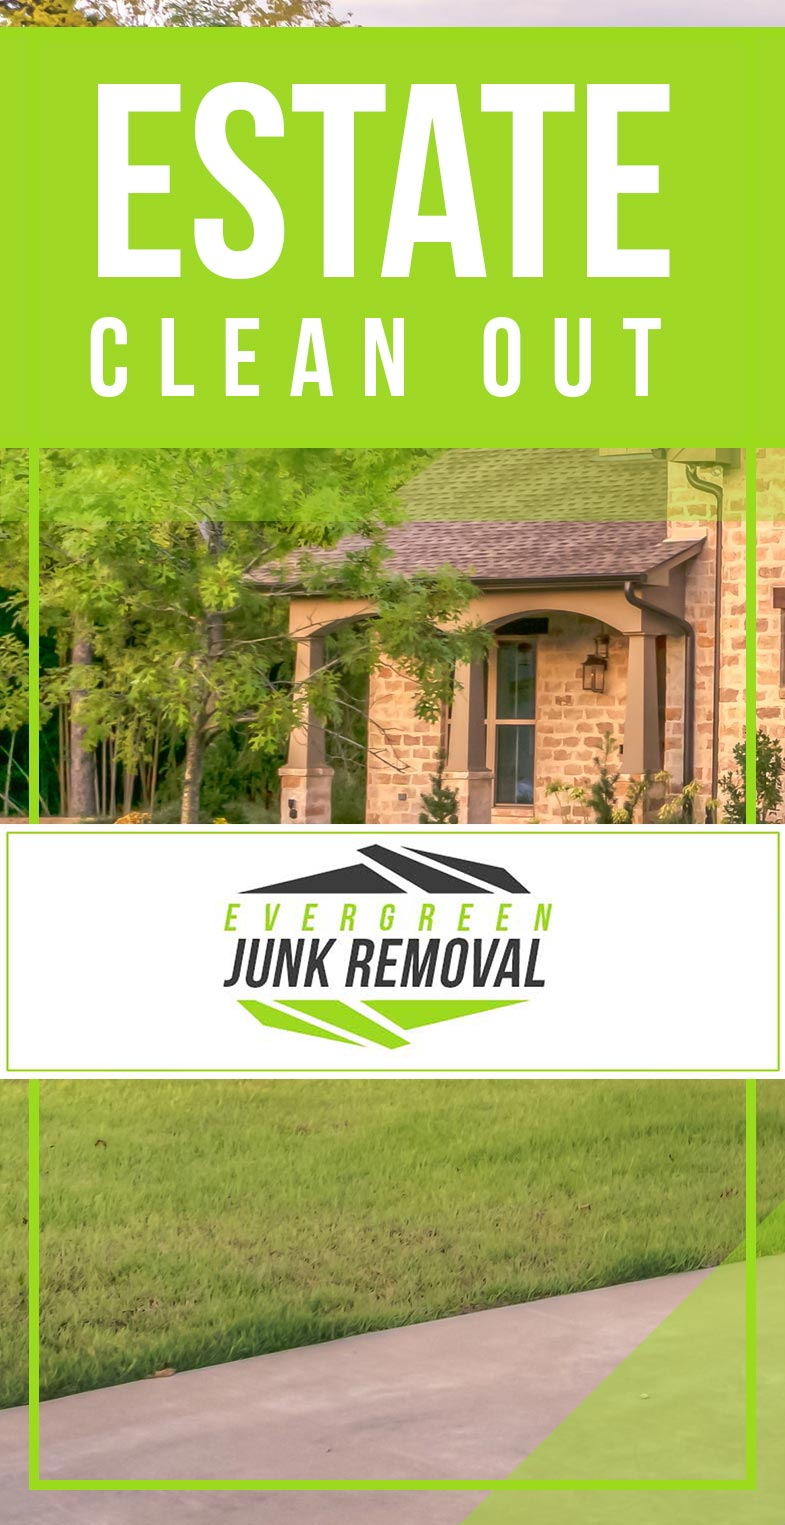 Livermore Property Clean Out